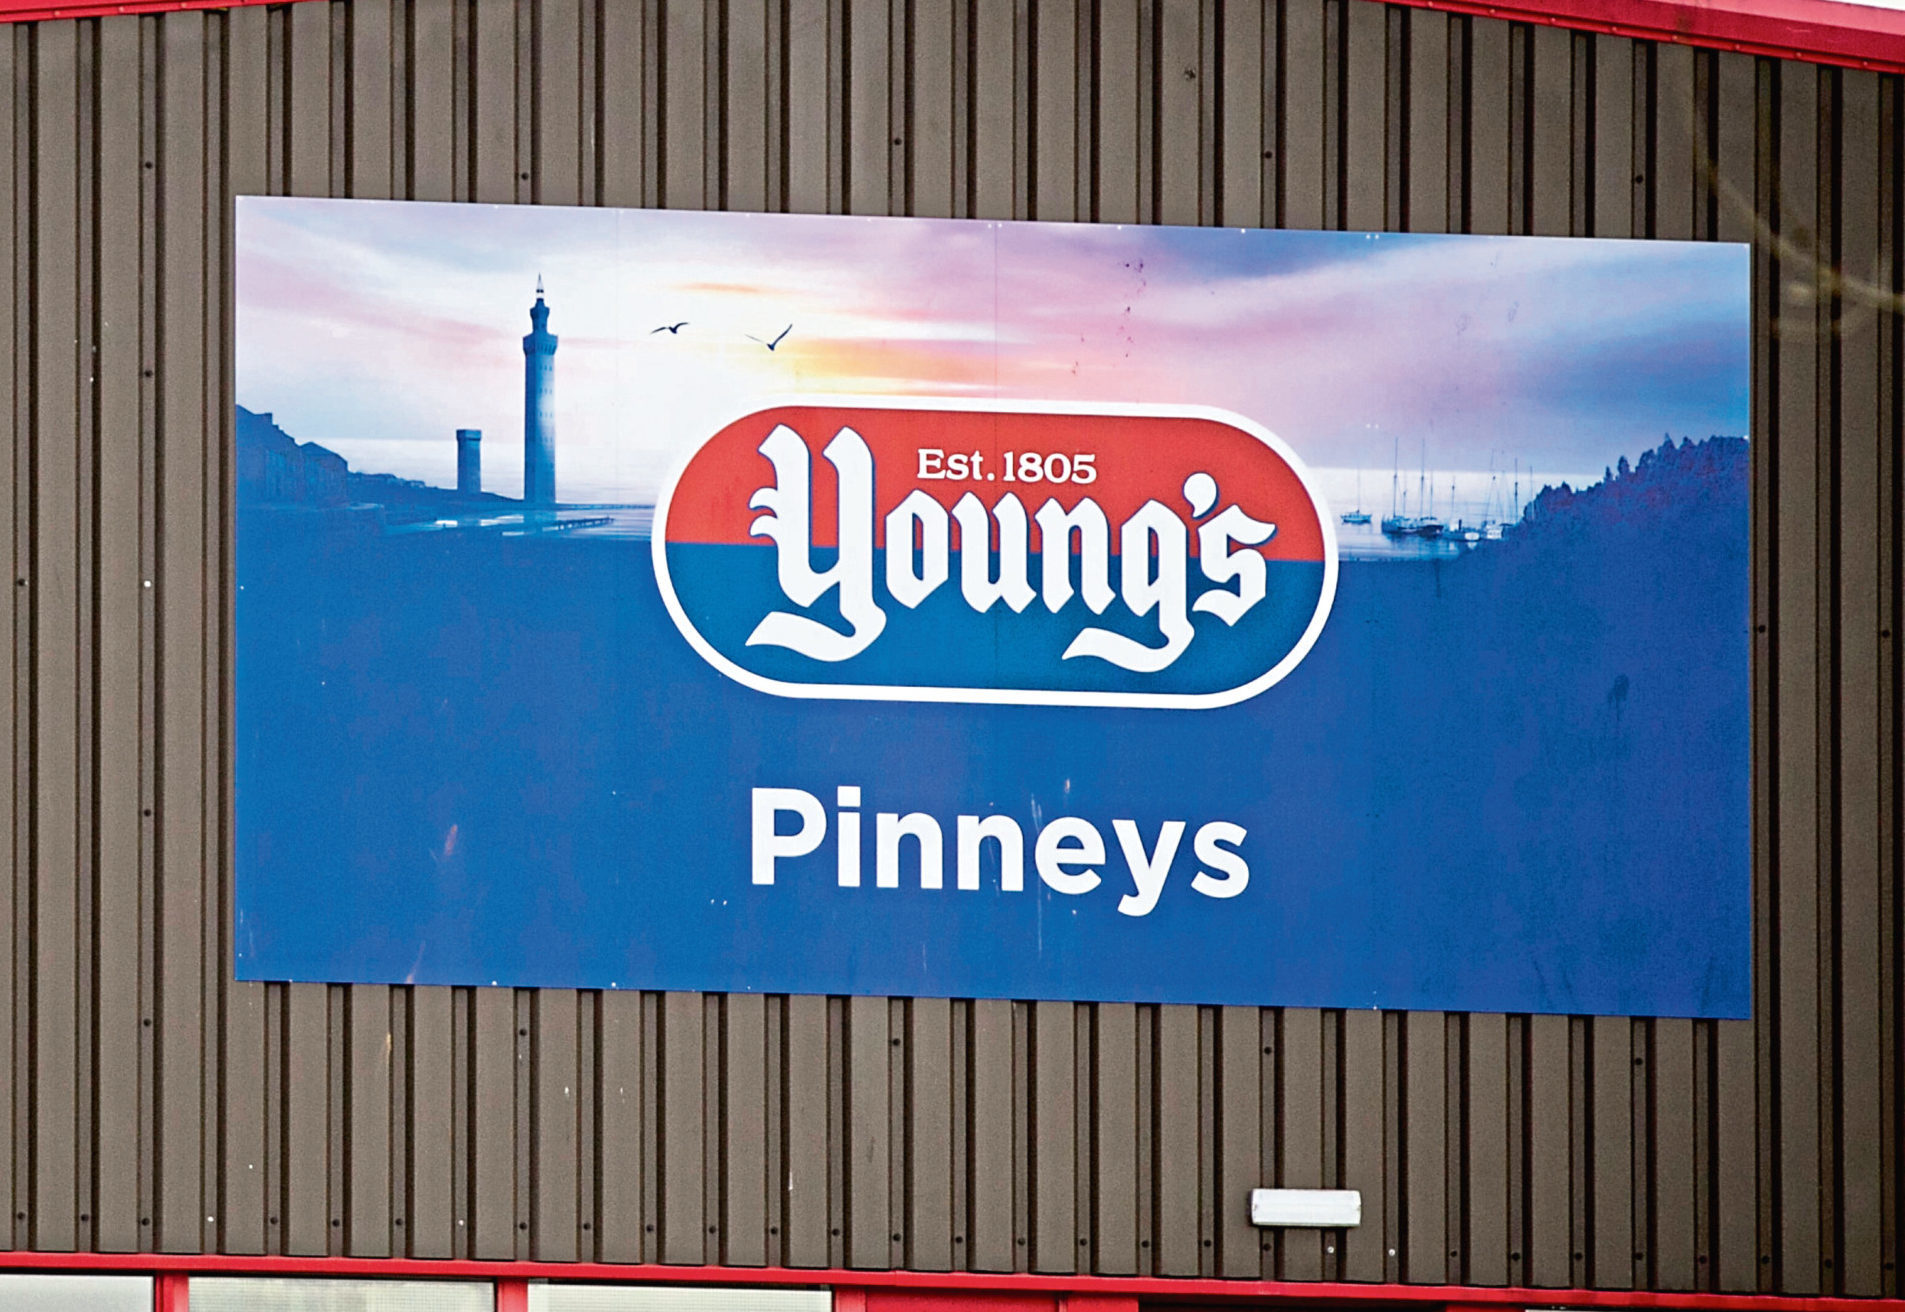 Pinneys fish factory (Andrew Cawley / DC Thomson)